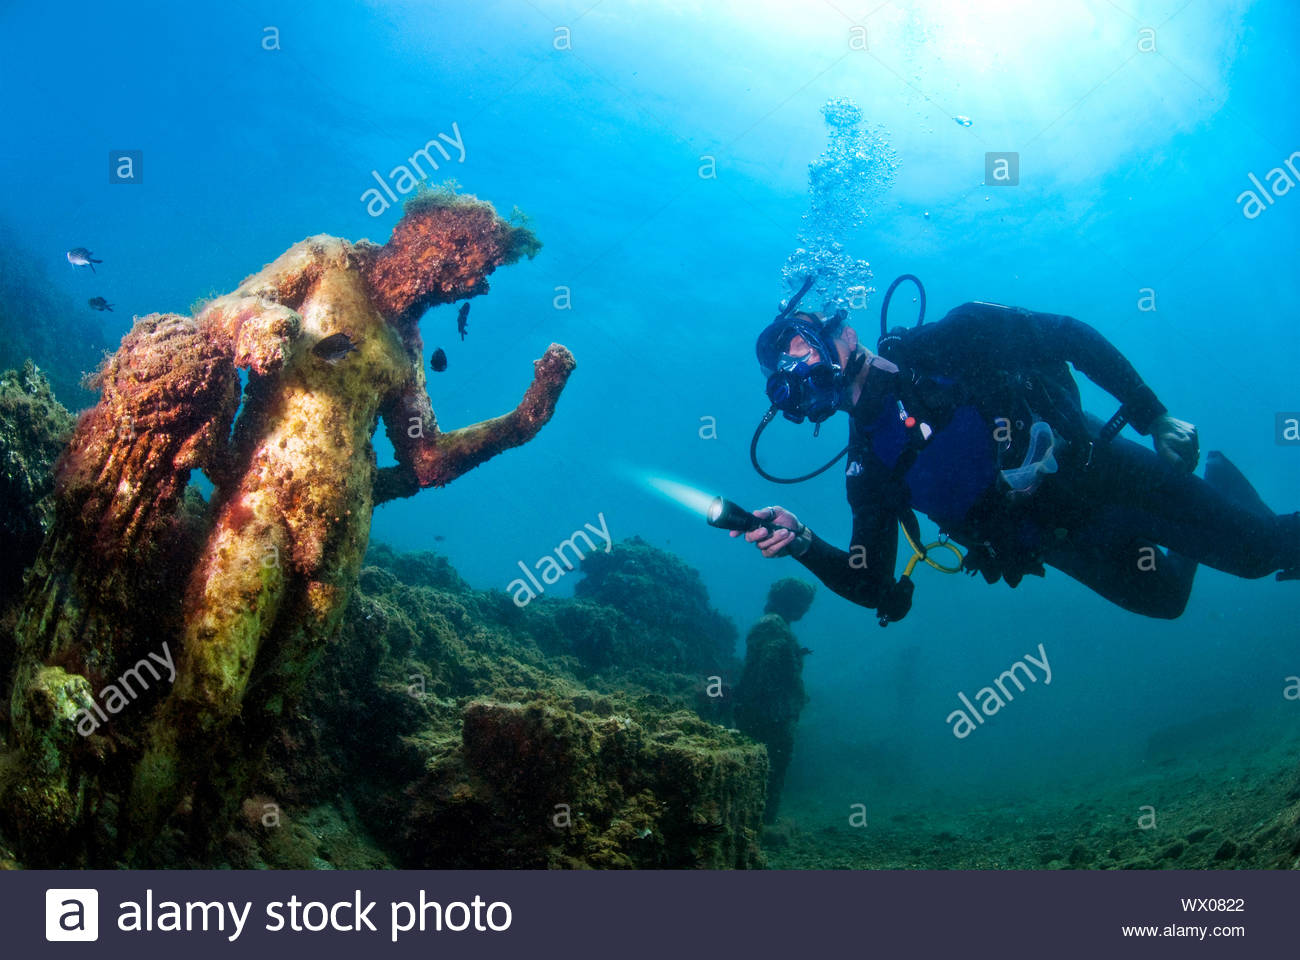 Baiae High Resolution Stock Photography and Images - Alamy